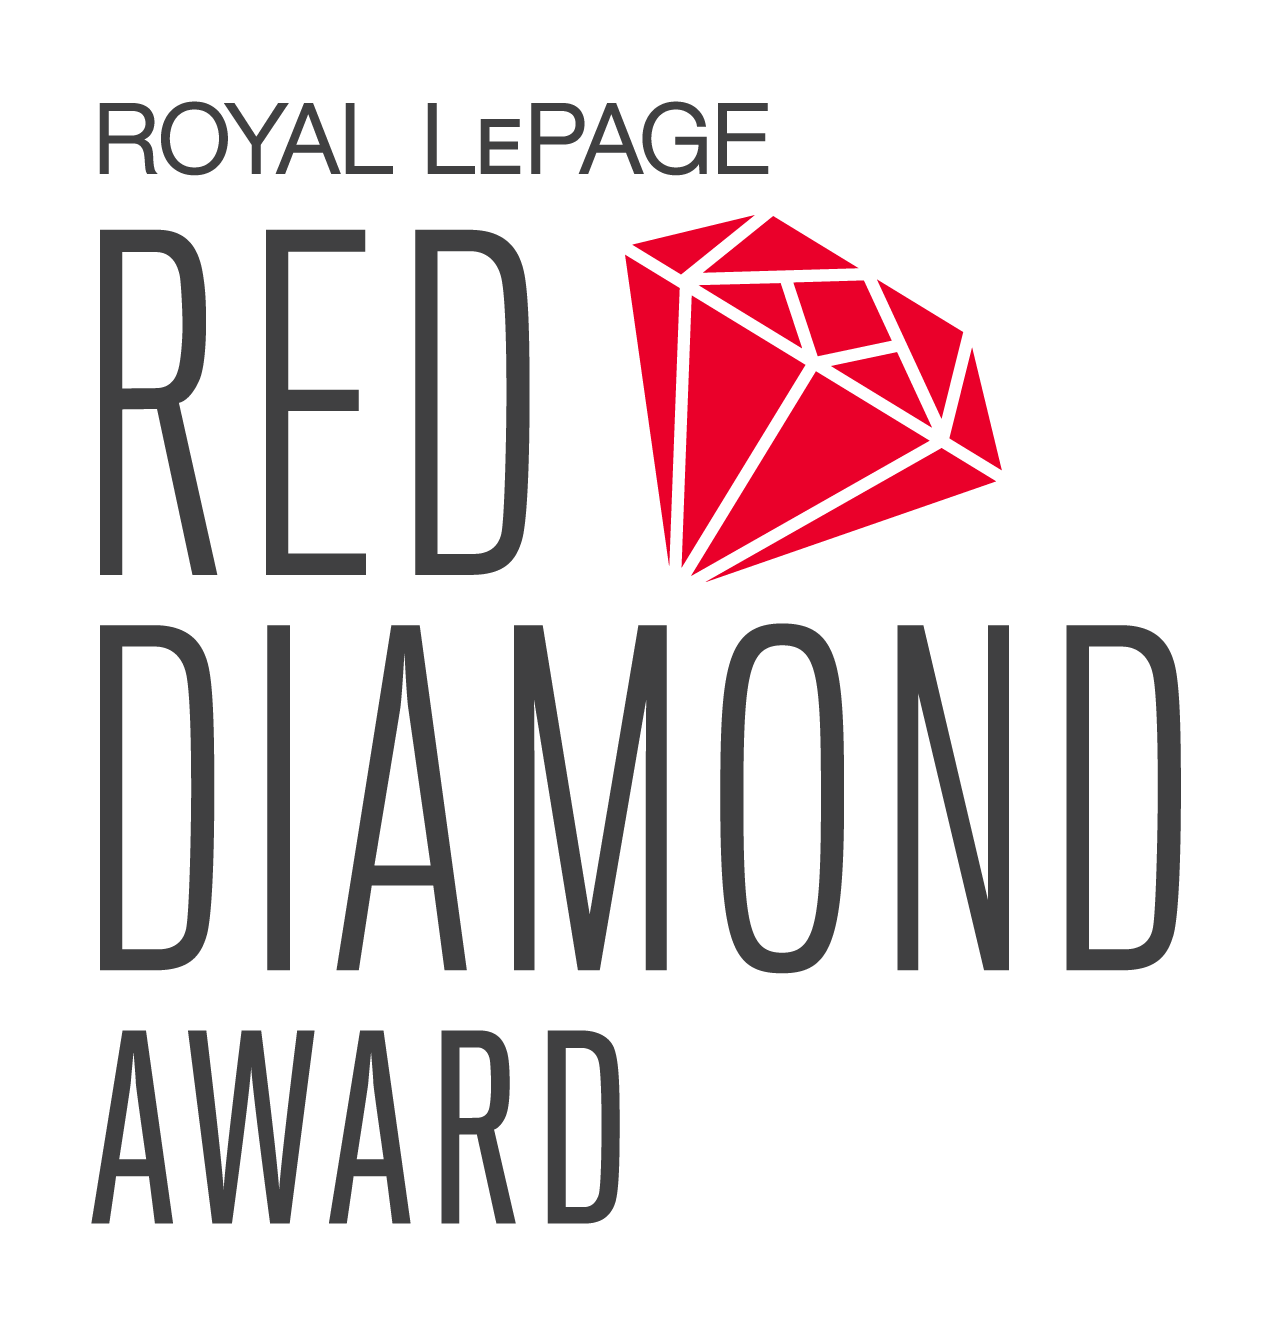 Red Diamond Awards